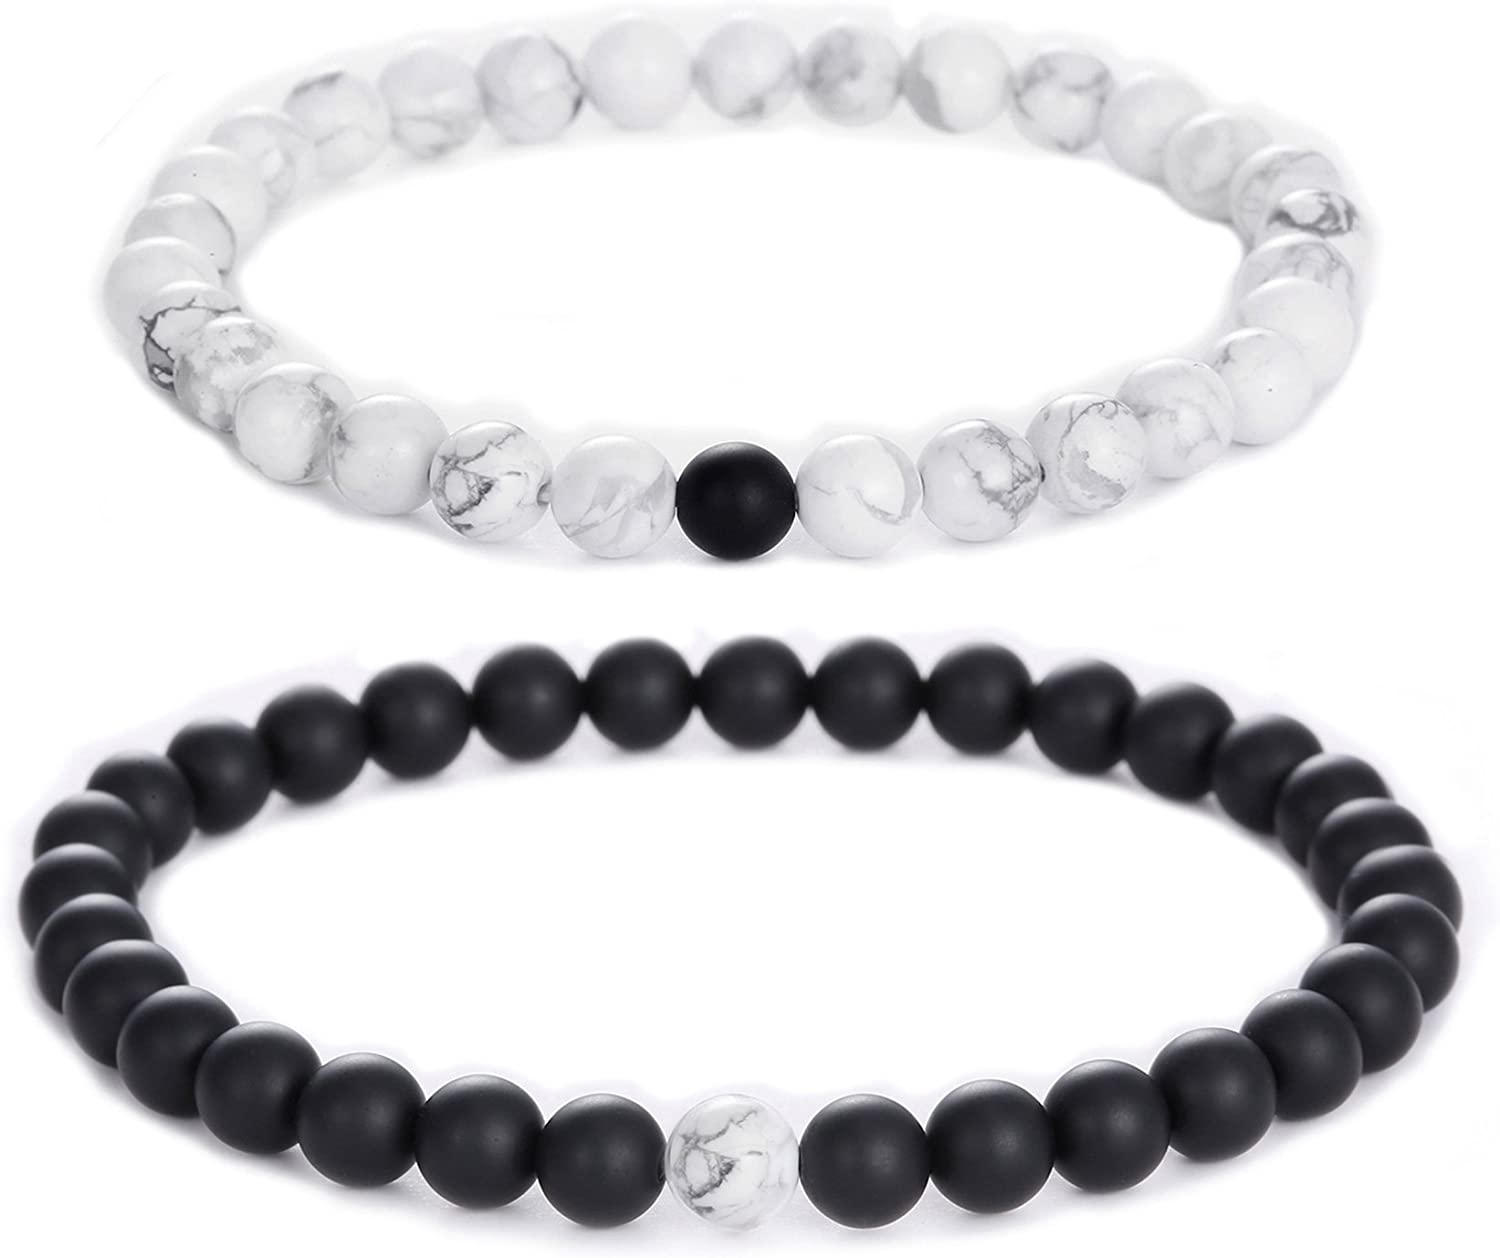 Jade cabbage Distance Relationship 6mm Black Matte Agate & White Howlite Stone Beads Bracelet for Couple Jewelry